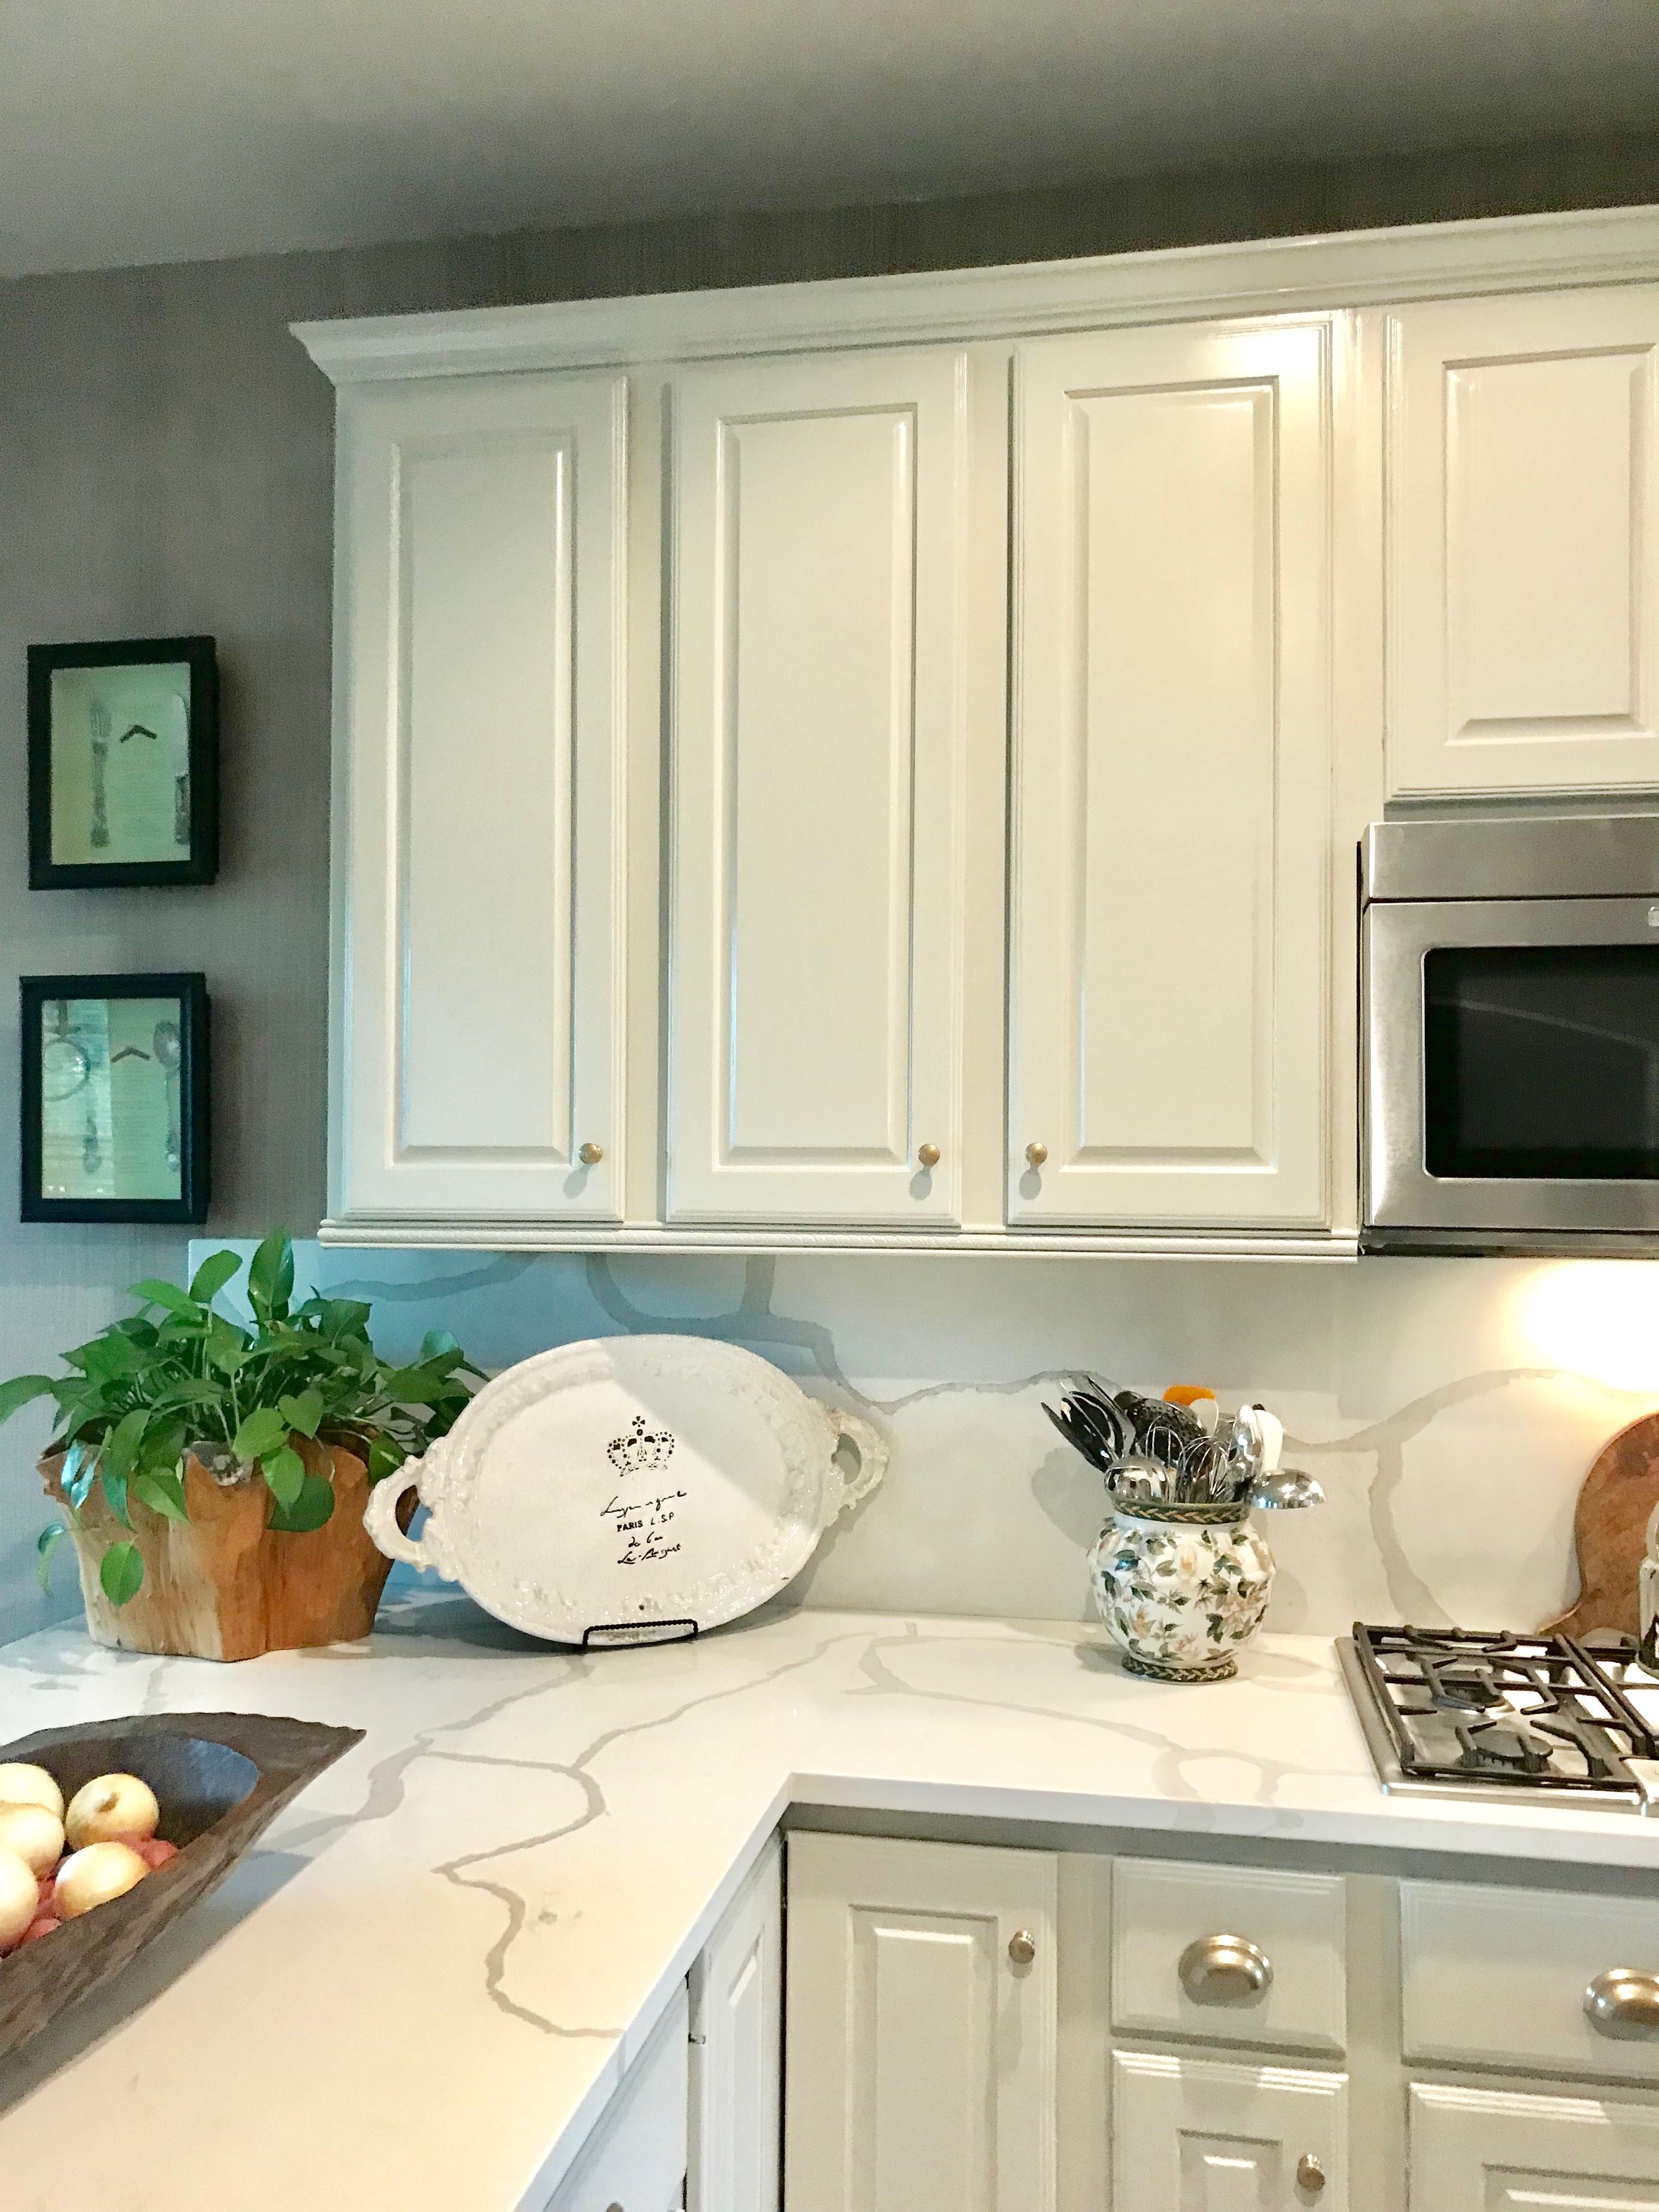 Oak Cabinets Painted In Revere Pewter Light Grey With A Black Island Painting Cabinets Oak Cabinets Pewter Lighting